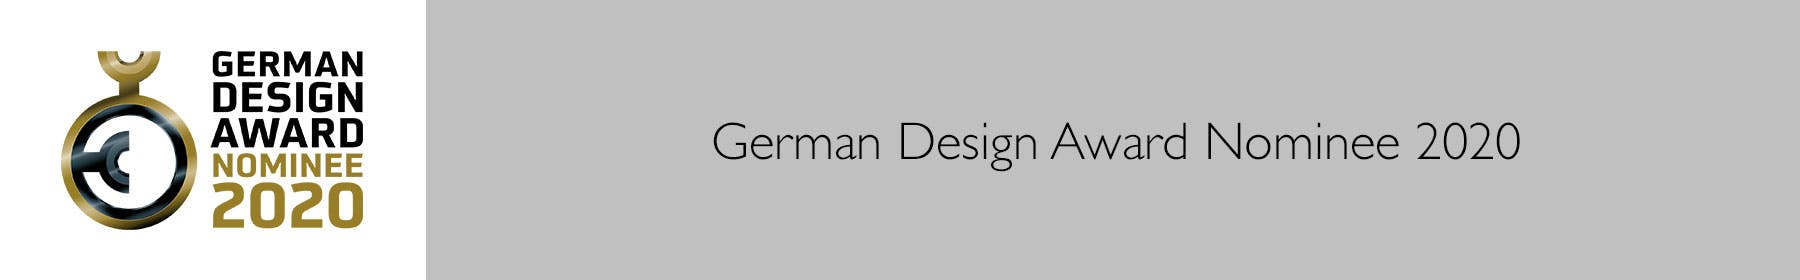 German Design Award Nominee 2020